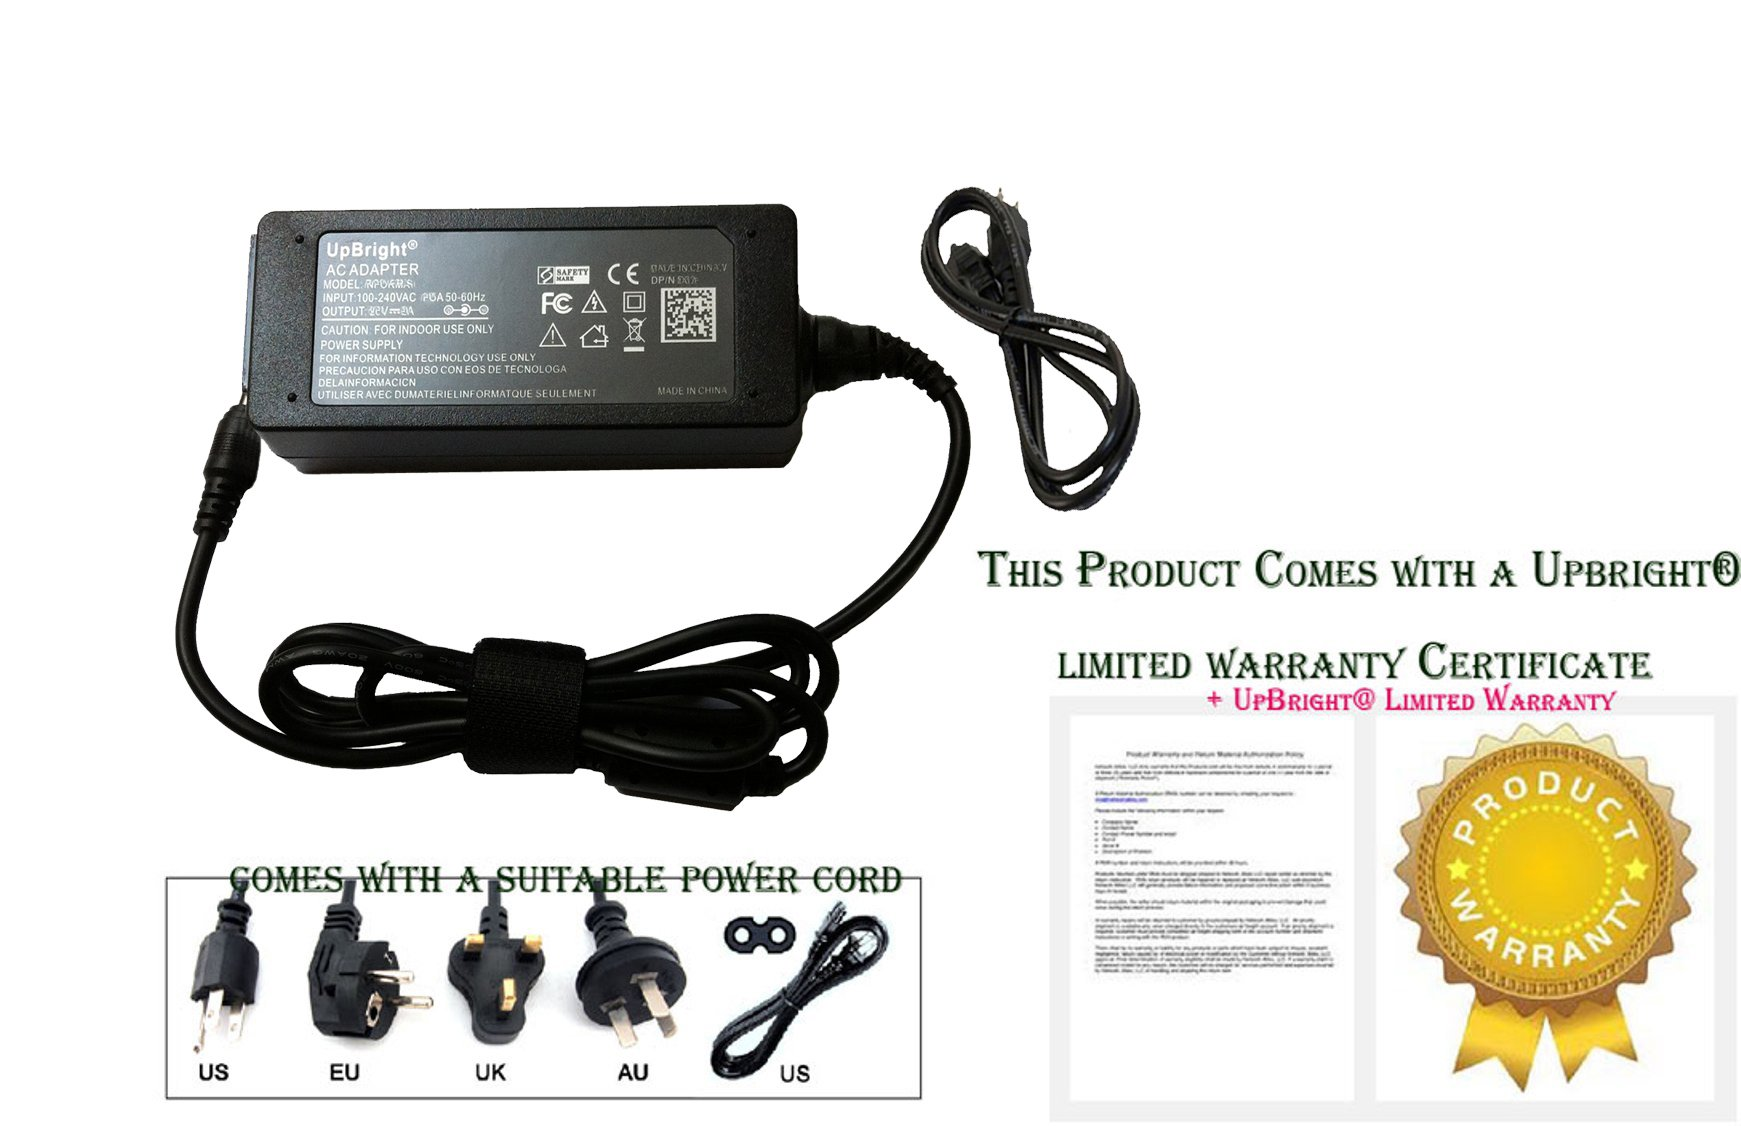 UpBright NEW 19V AC/DC Adapter For Asus AD883320 AD883520 AD883P20 AD883J20 010HLF BAH 010KLF BAH 010HLFBAH 010KLFBAH Netbook Laptop Notebook PC 19V 1.75A 2.37A 33W 45W Power Supply Cord Charger PSU